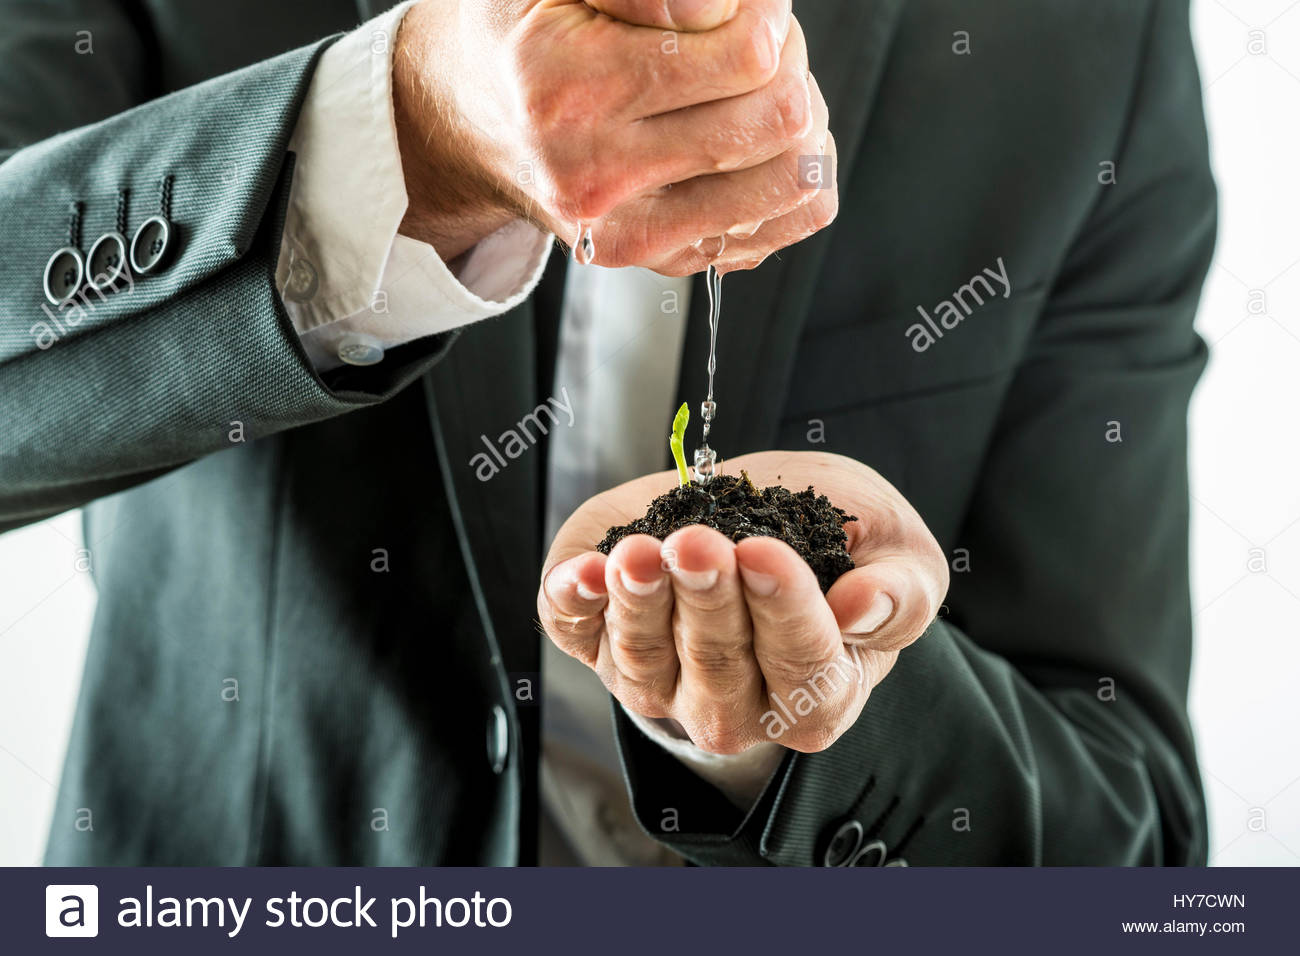 Closeup of businessman watering and nurturing a green sprout growing from a fertile soil he is holding in his cupped - Stock Image